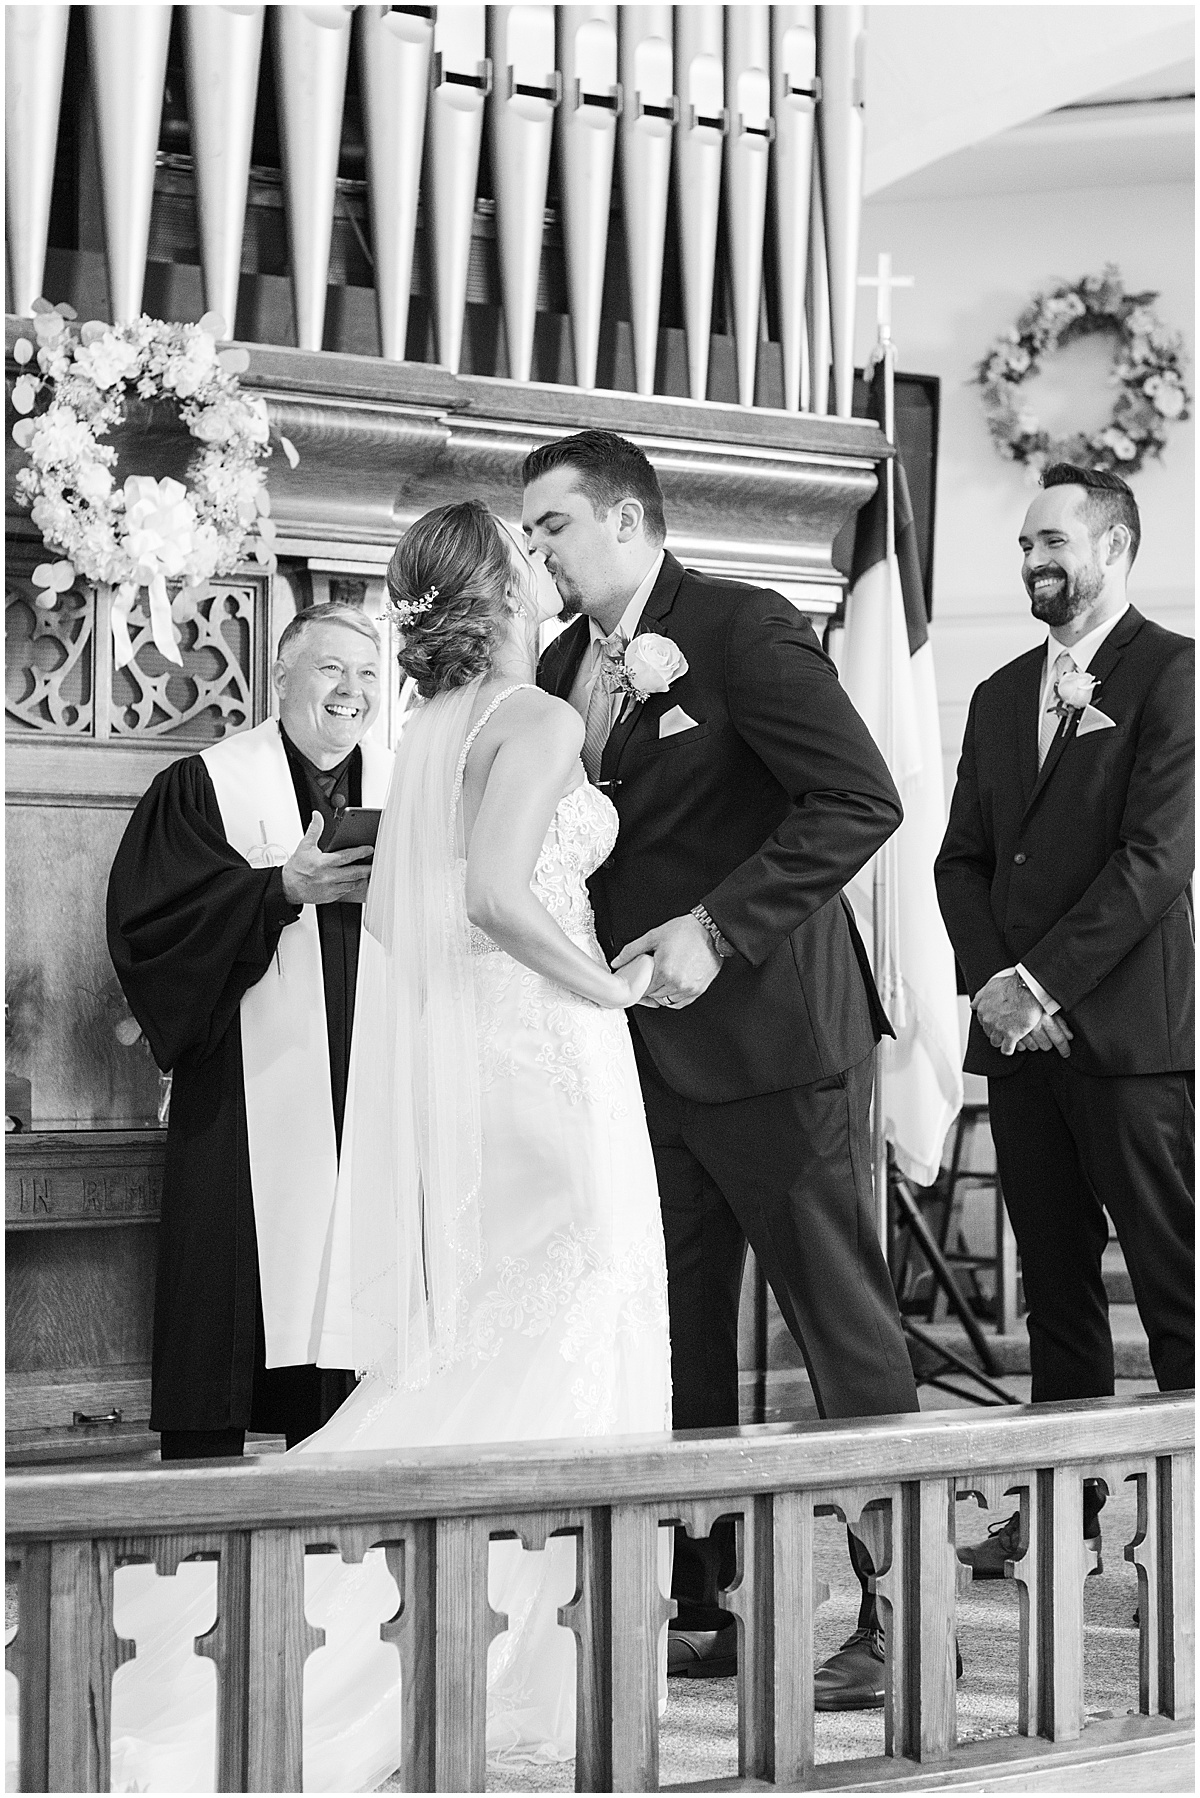 First kiss in wedding ceremony at Trinity United Methodist Church in Rensselaer, Indiana